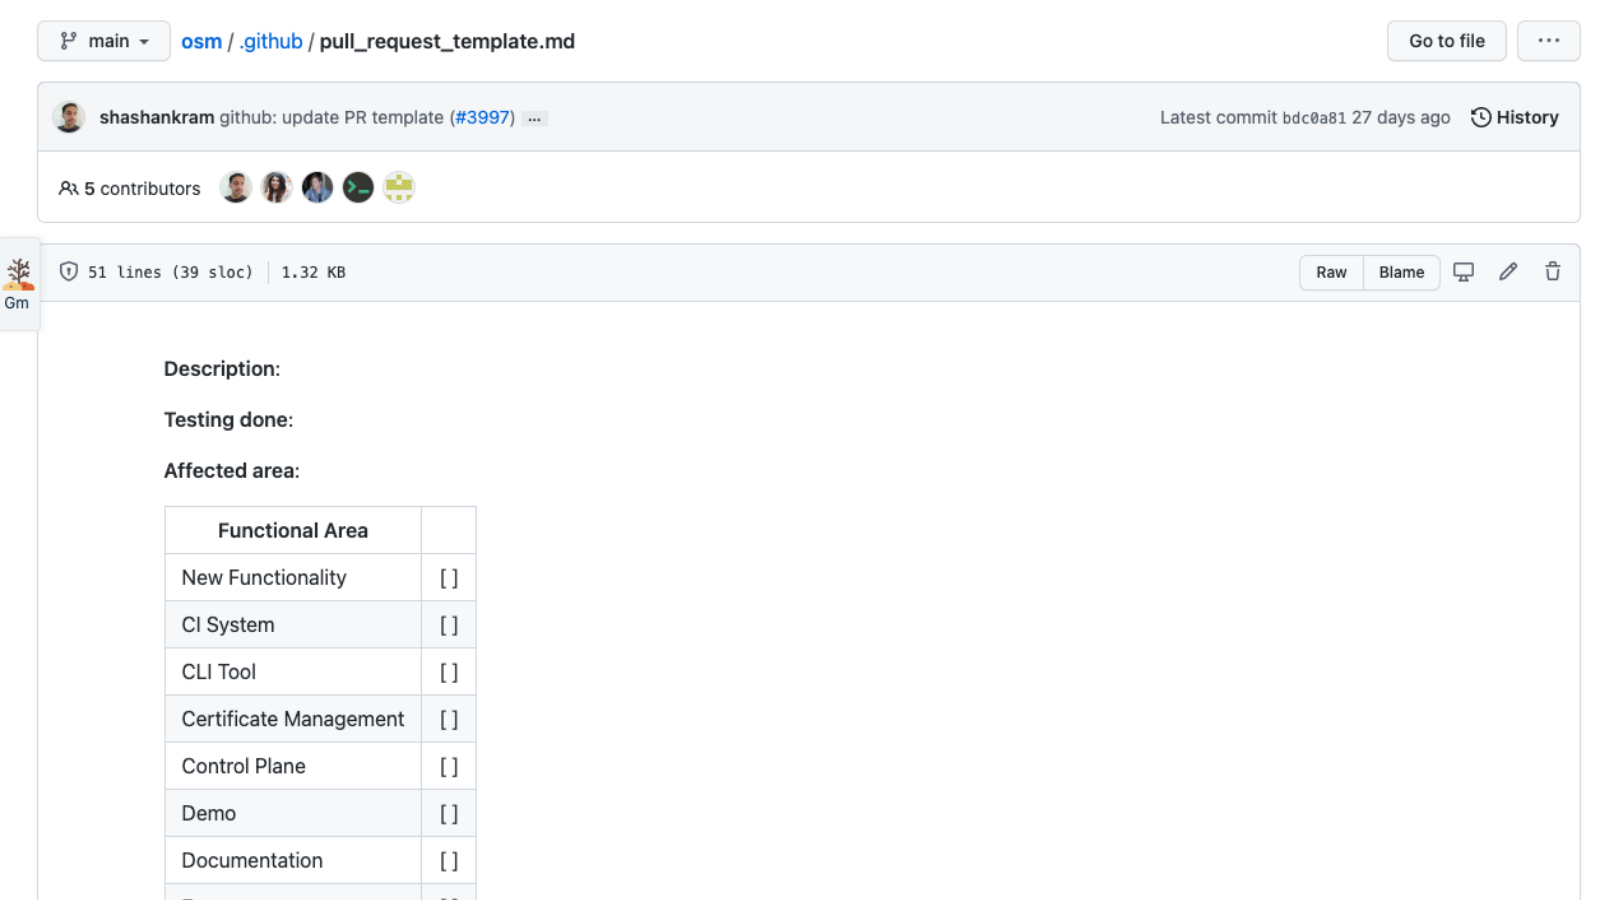 A screenshot of a pull request template from Microsoft's Open Service Mesh project.